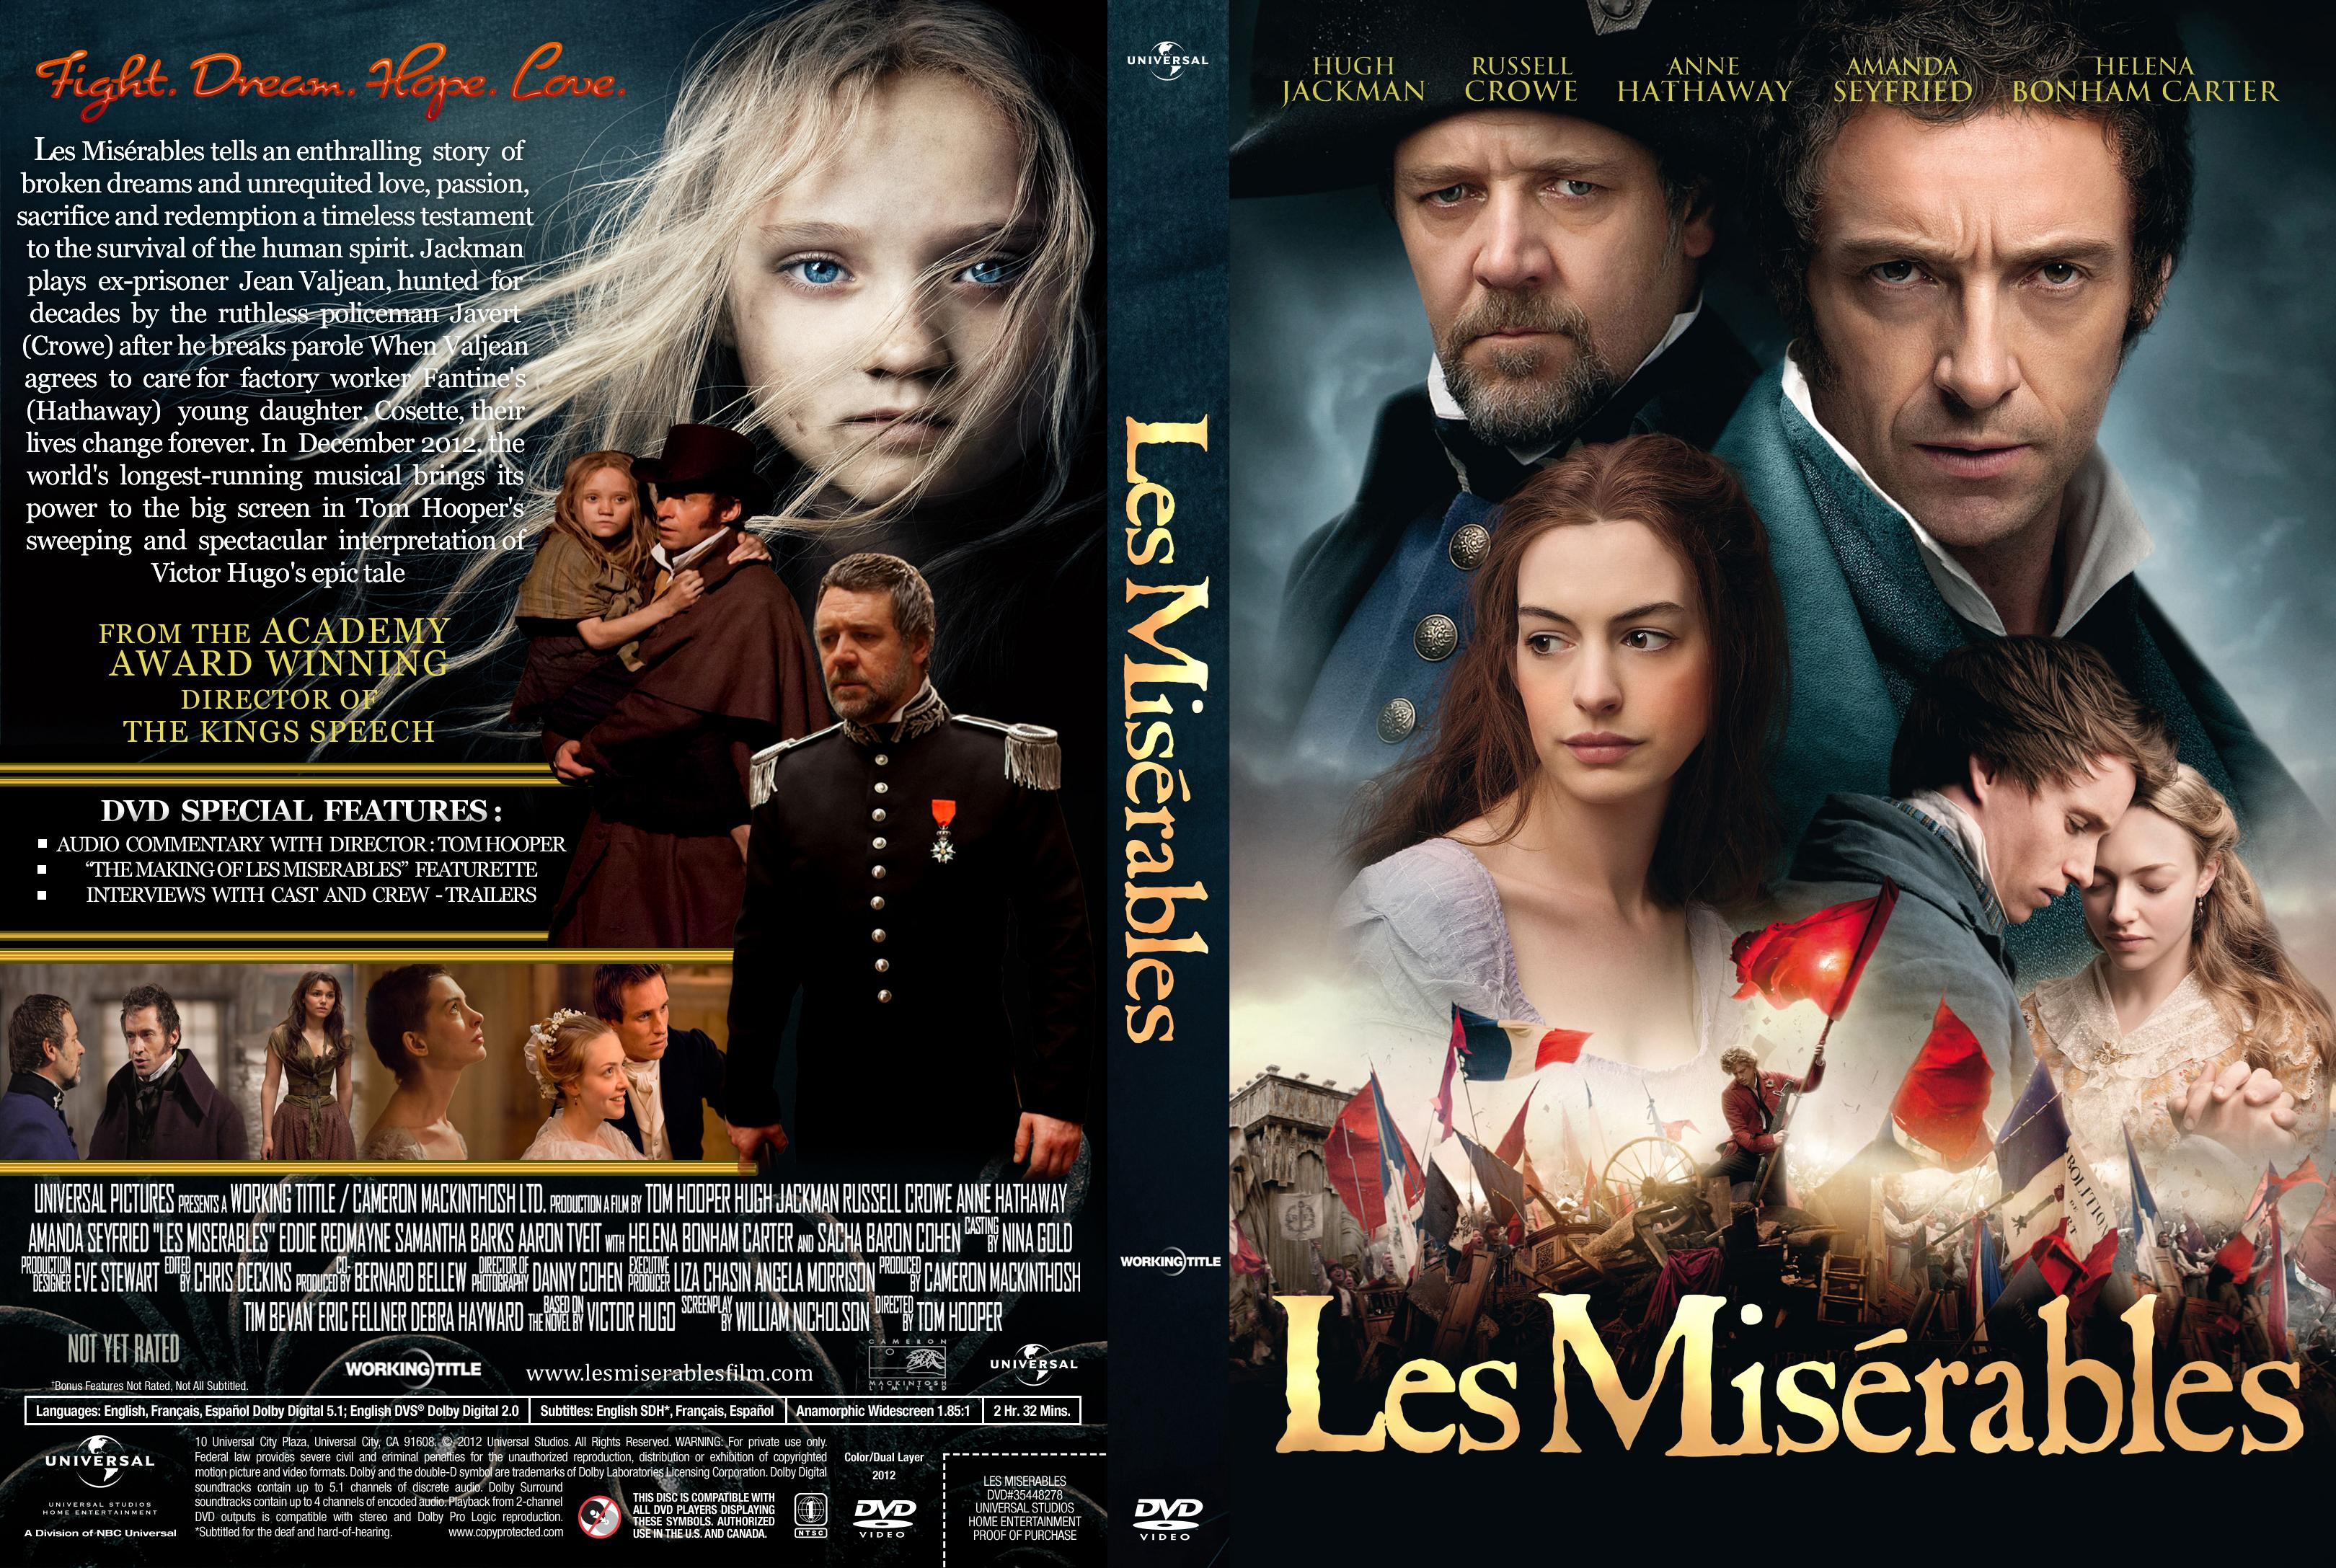 a critical review of les miserables an epic musical saga of jean valjean